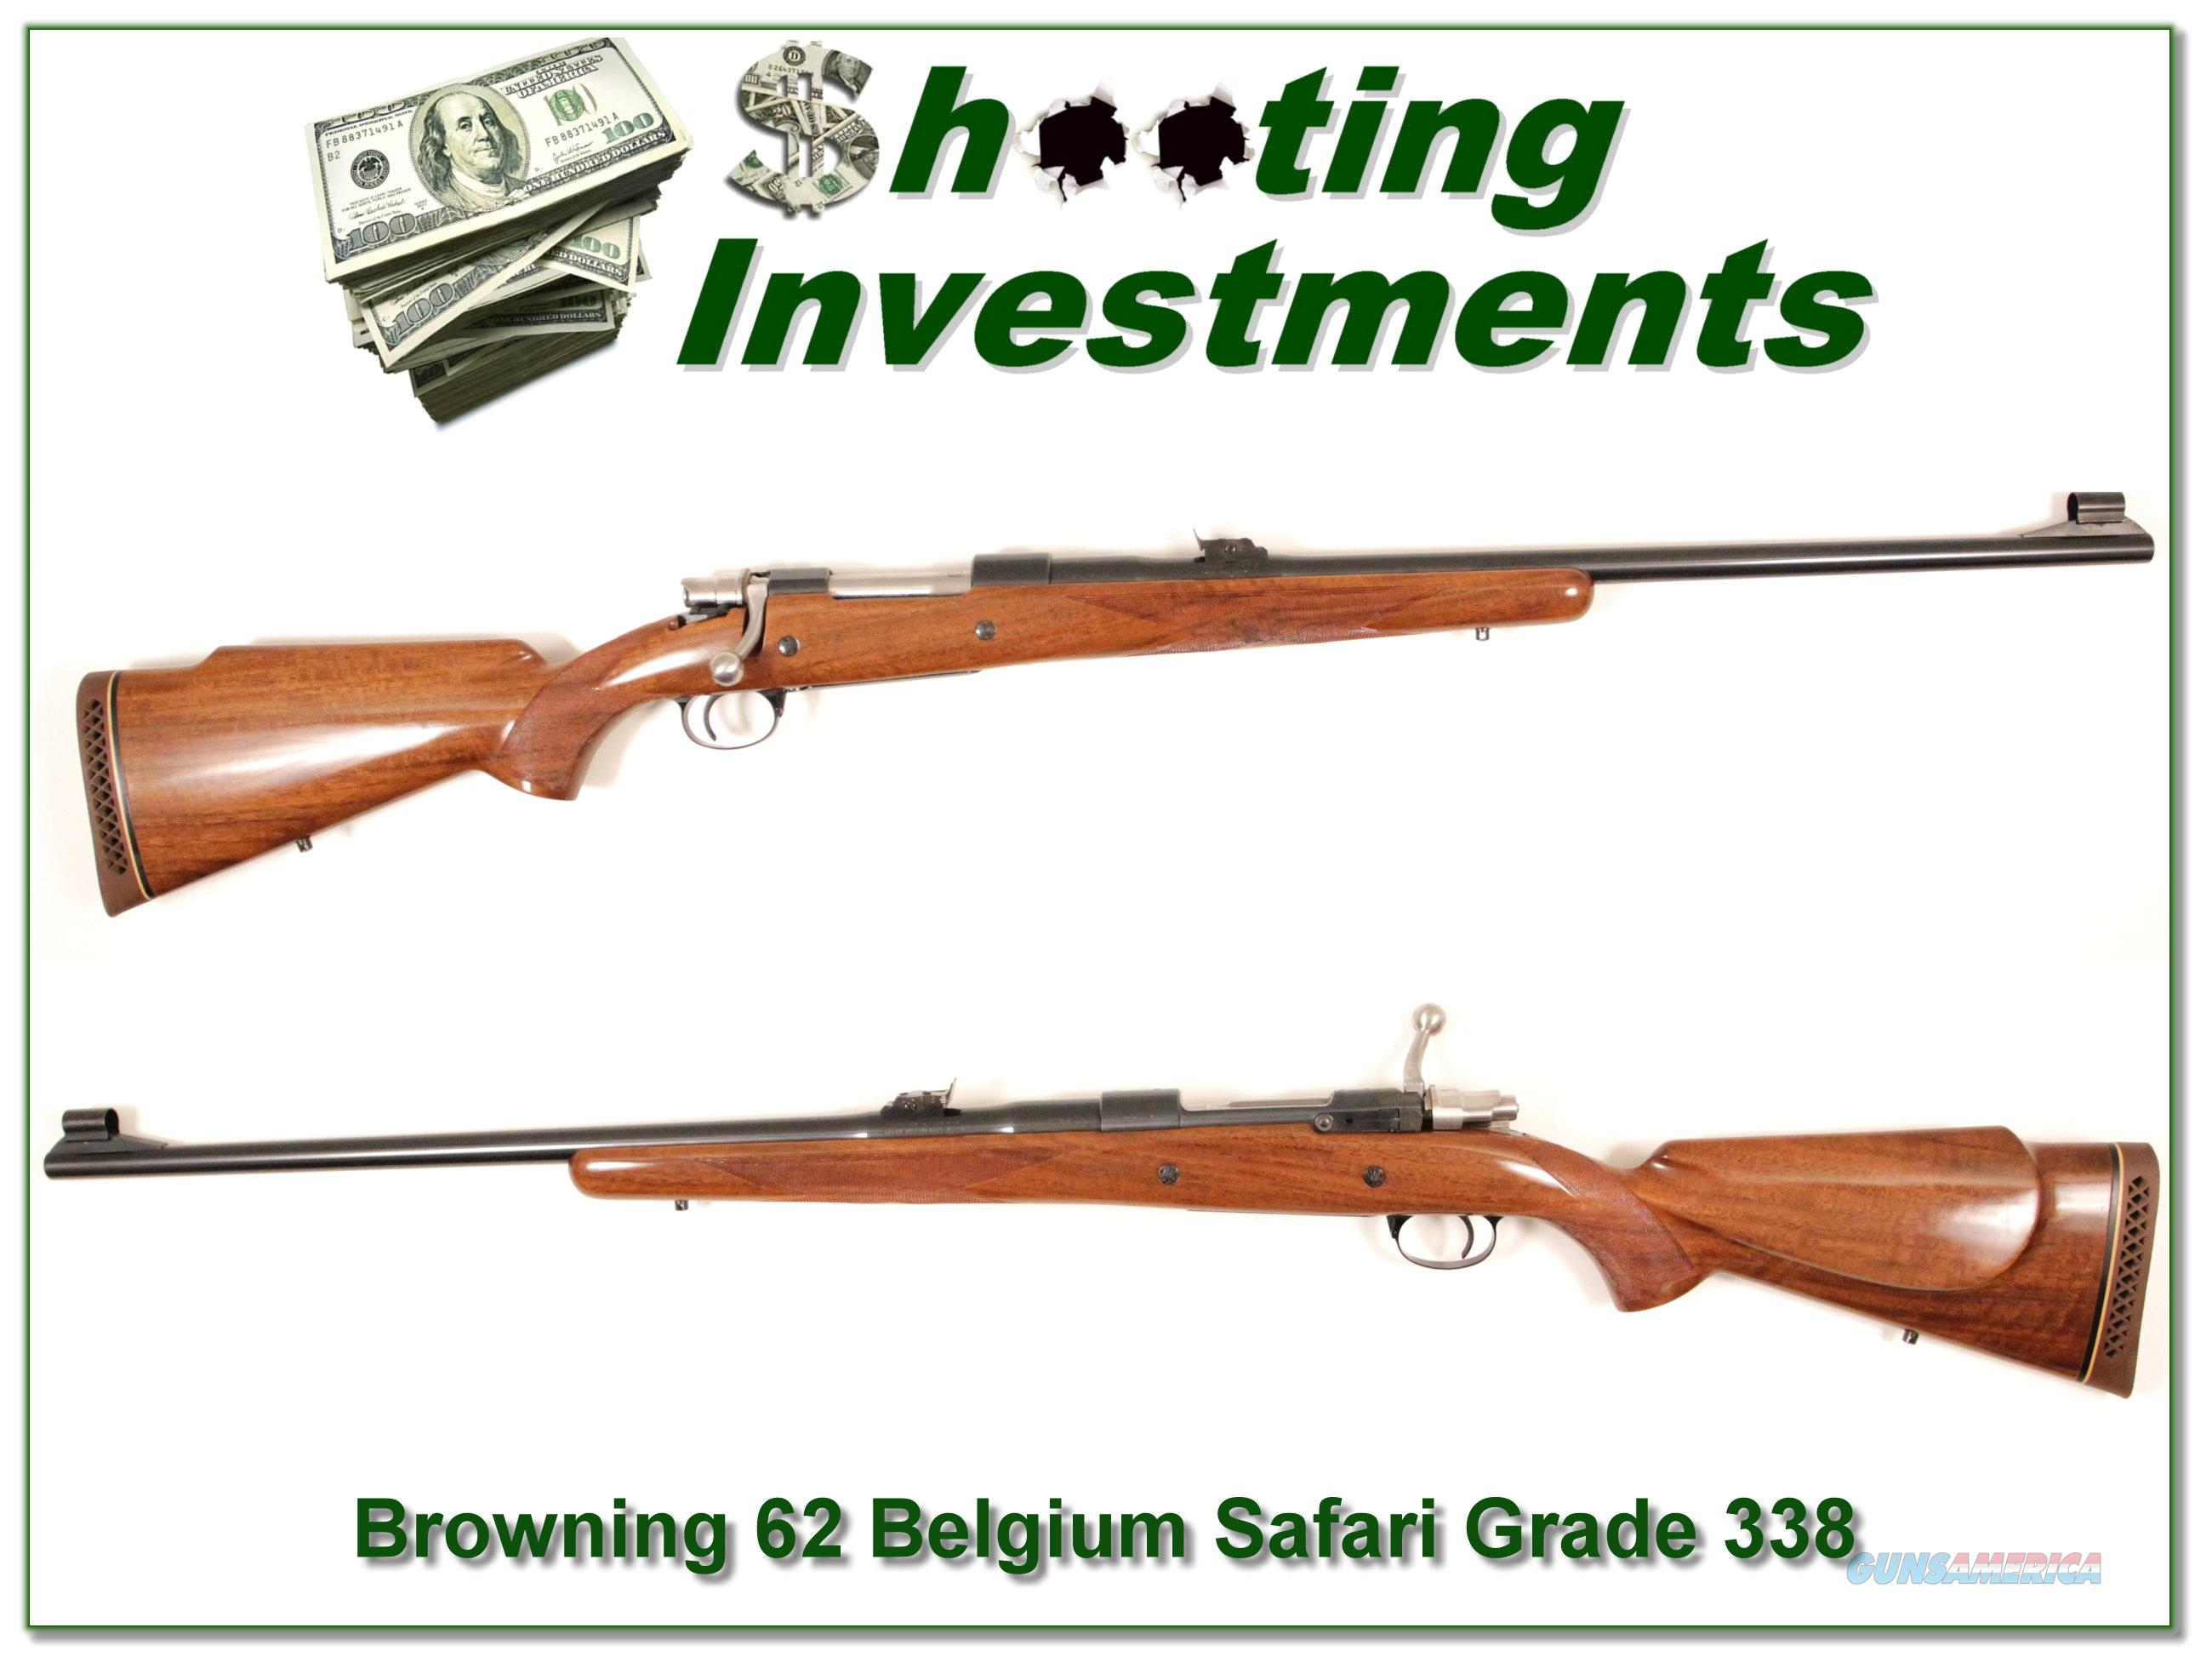 Browning early Belgium Safari Grade 338 Long Extractor mint!  Guns > Rifles > Browning Rifles > Bolt Action > Hunting > Stainless